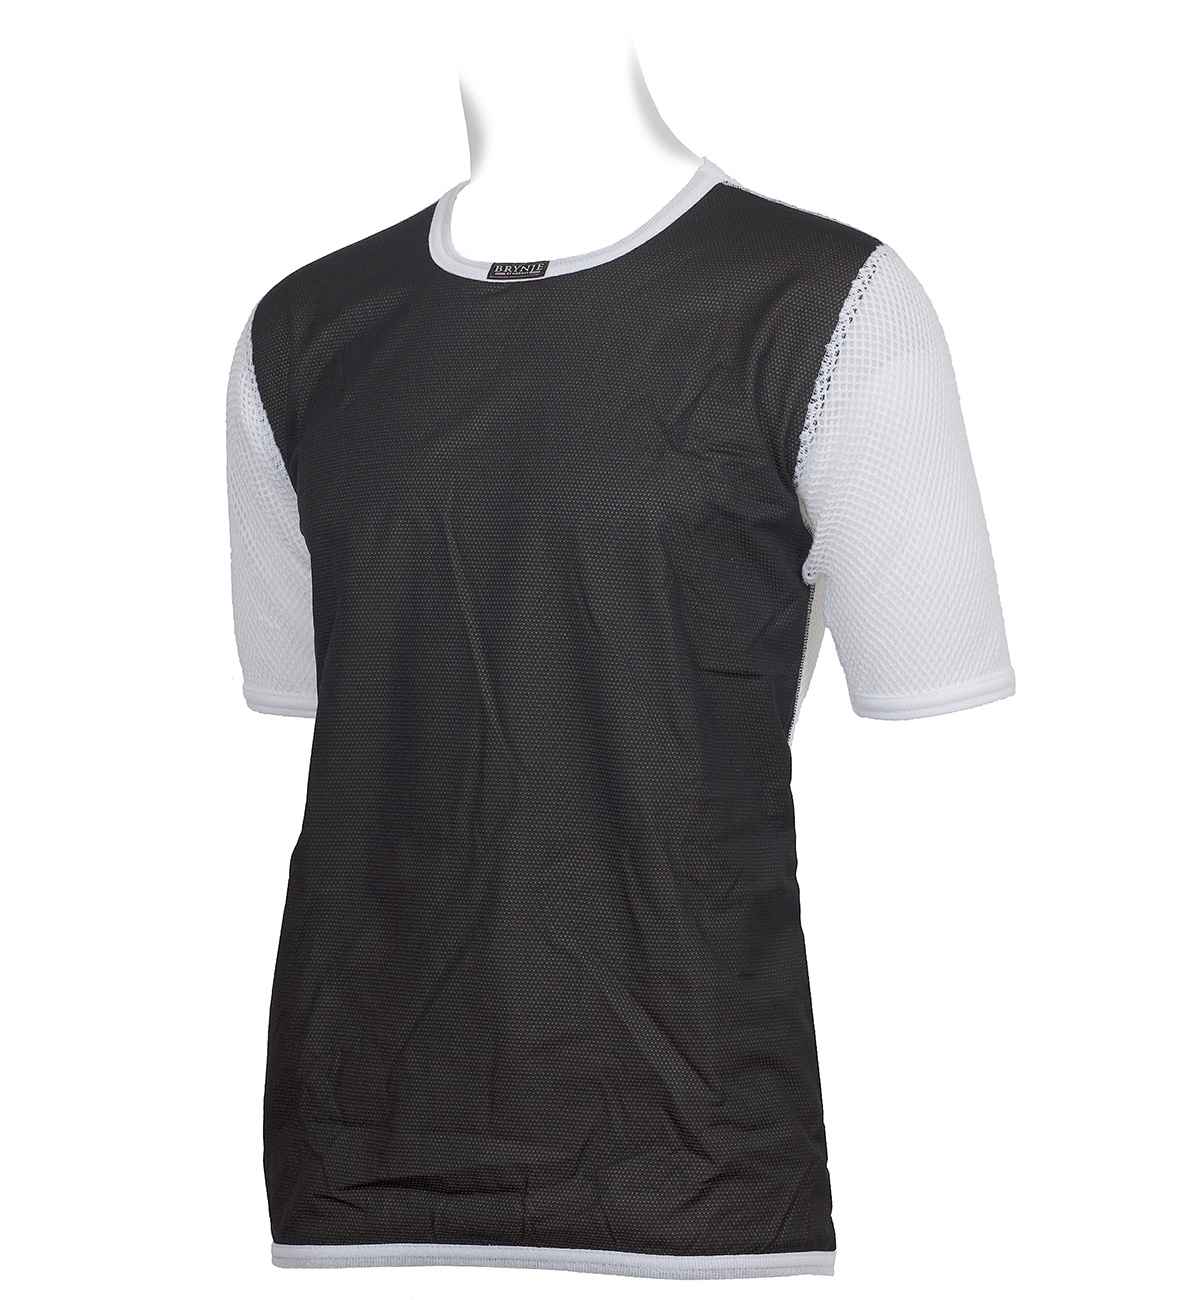 c7d87acf Brynje Super Thermo T-Shirt med vindfront – Dame – ShopClub